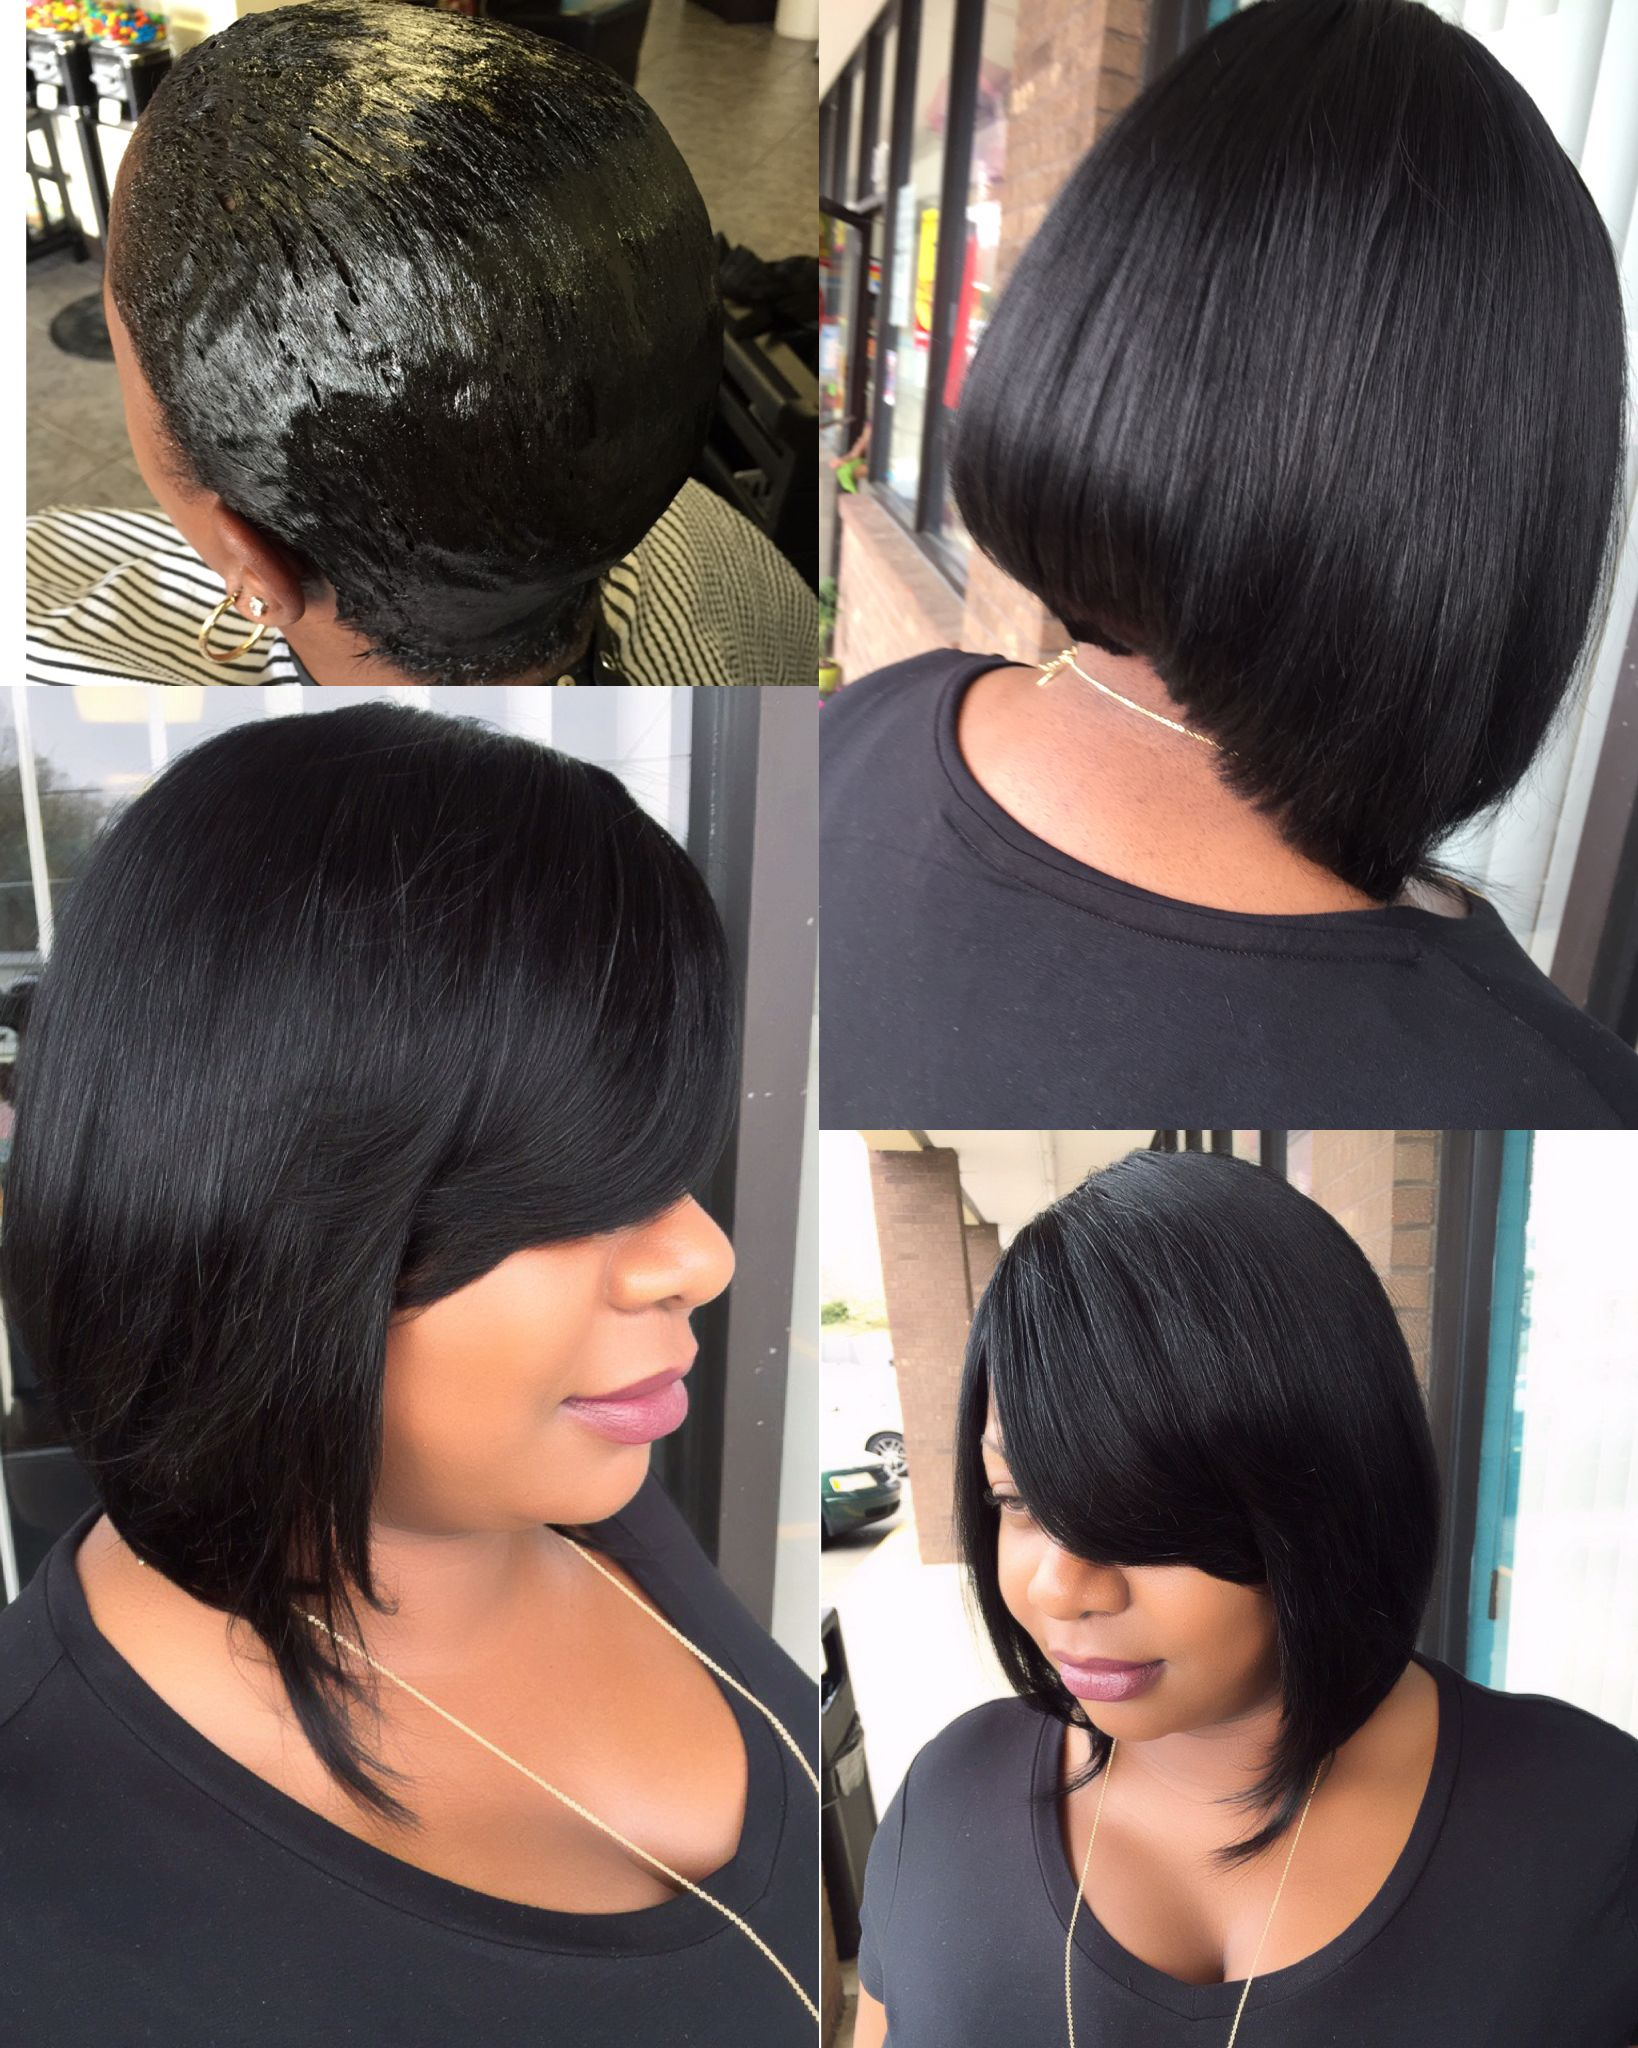 Quick Weave Bob Nc Stylist Salon Owner Available For Commercial Print Tv Editorial God Follower By His Grace 336 Quick Weave Bob Hair Studio Hair Laid